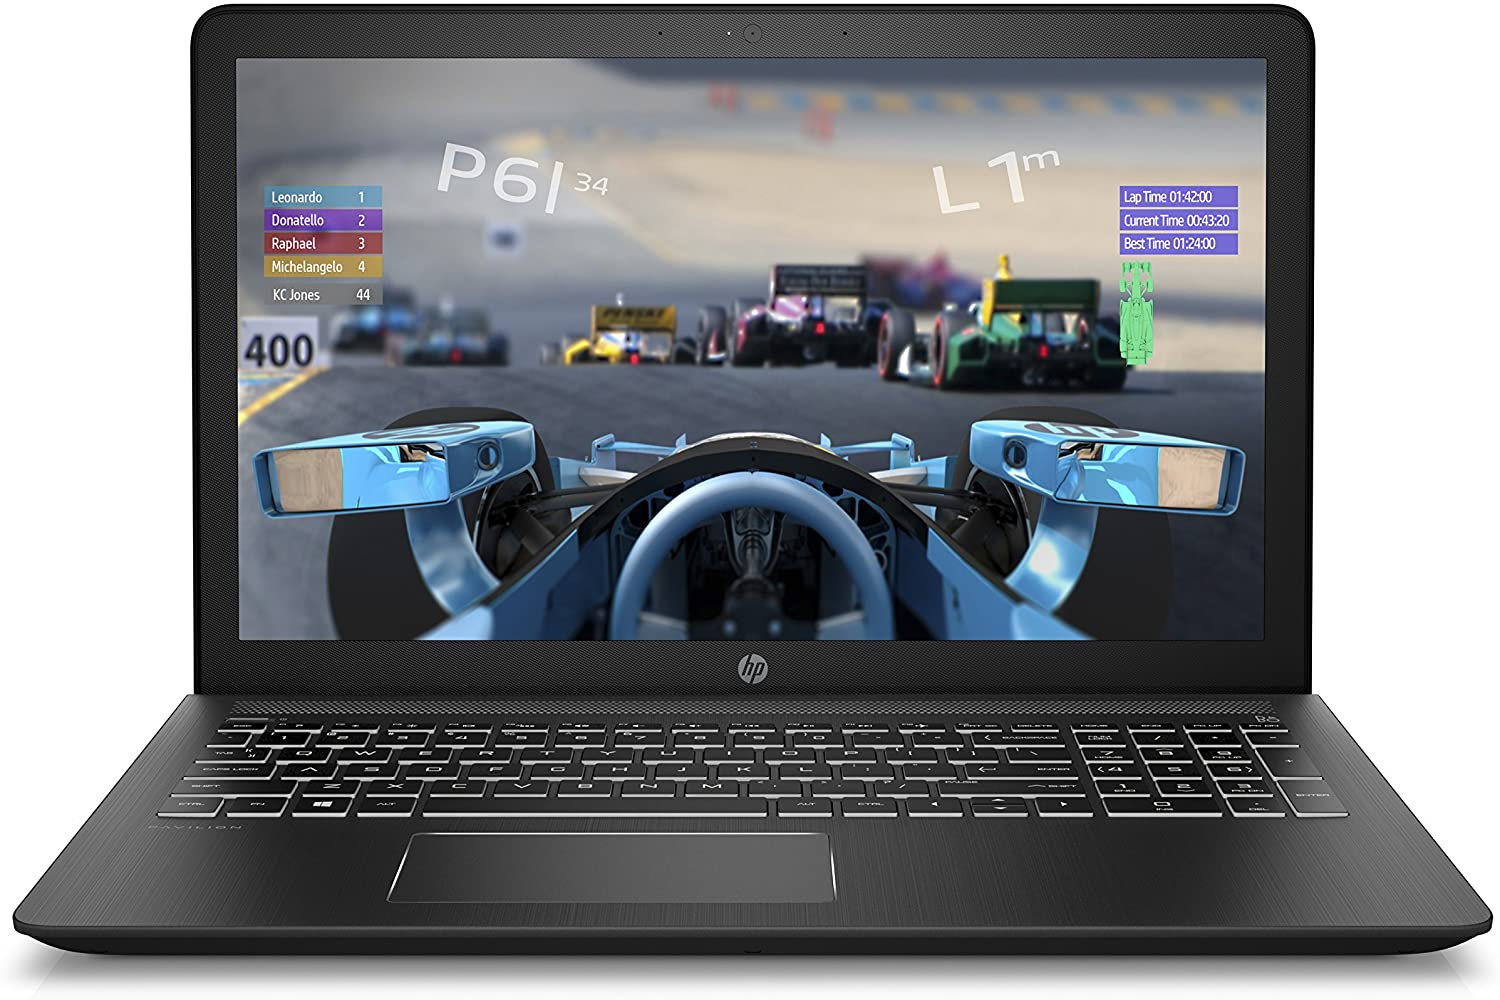 HP Pavilion Power 15-inch Laptop, Intel Core i7-7700HQ , AMD Radeon RX 550, 12GB RAM, 1TB hard drive, Windows 10 (15-cb071nr, Black), Gaming